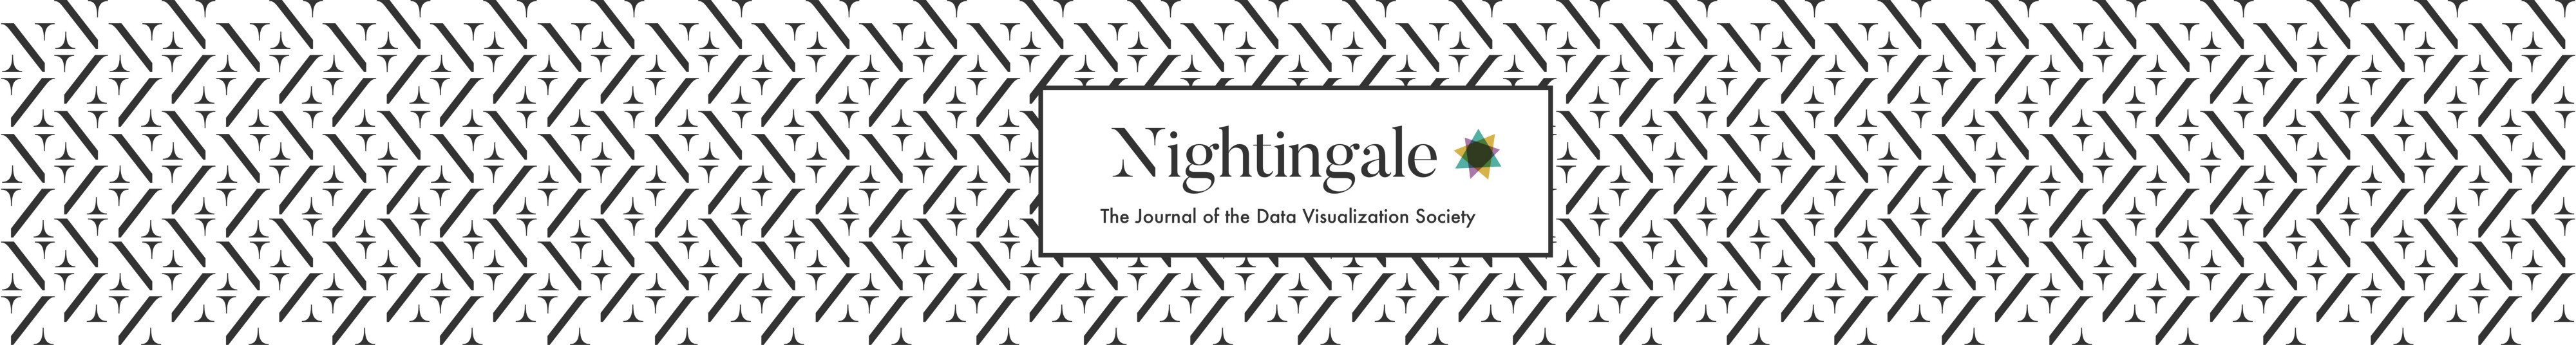 Nightingale: The Journal of the Data Visualization Society footer